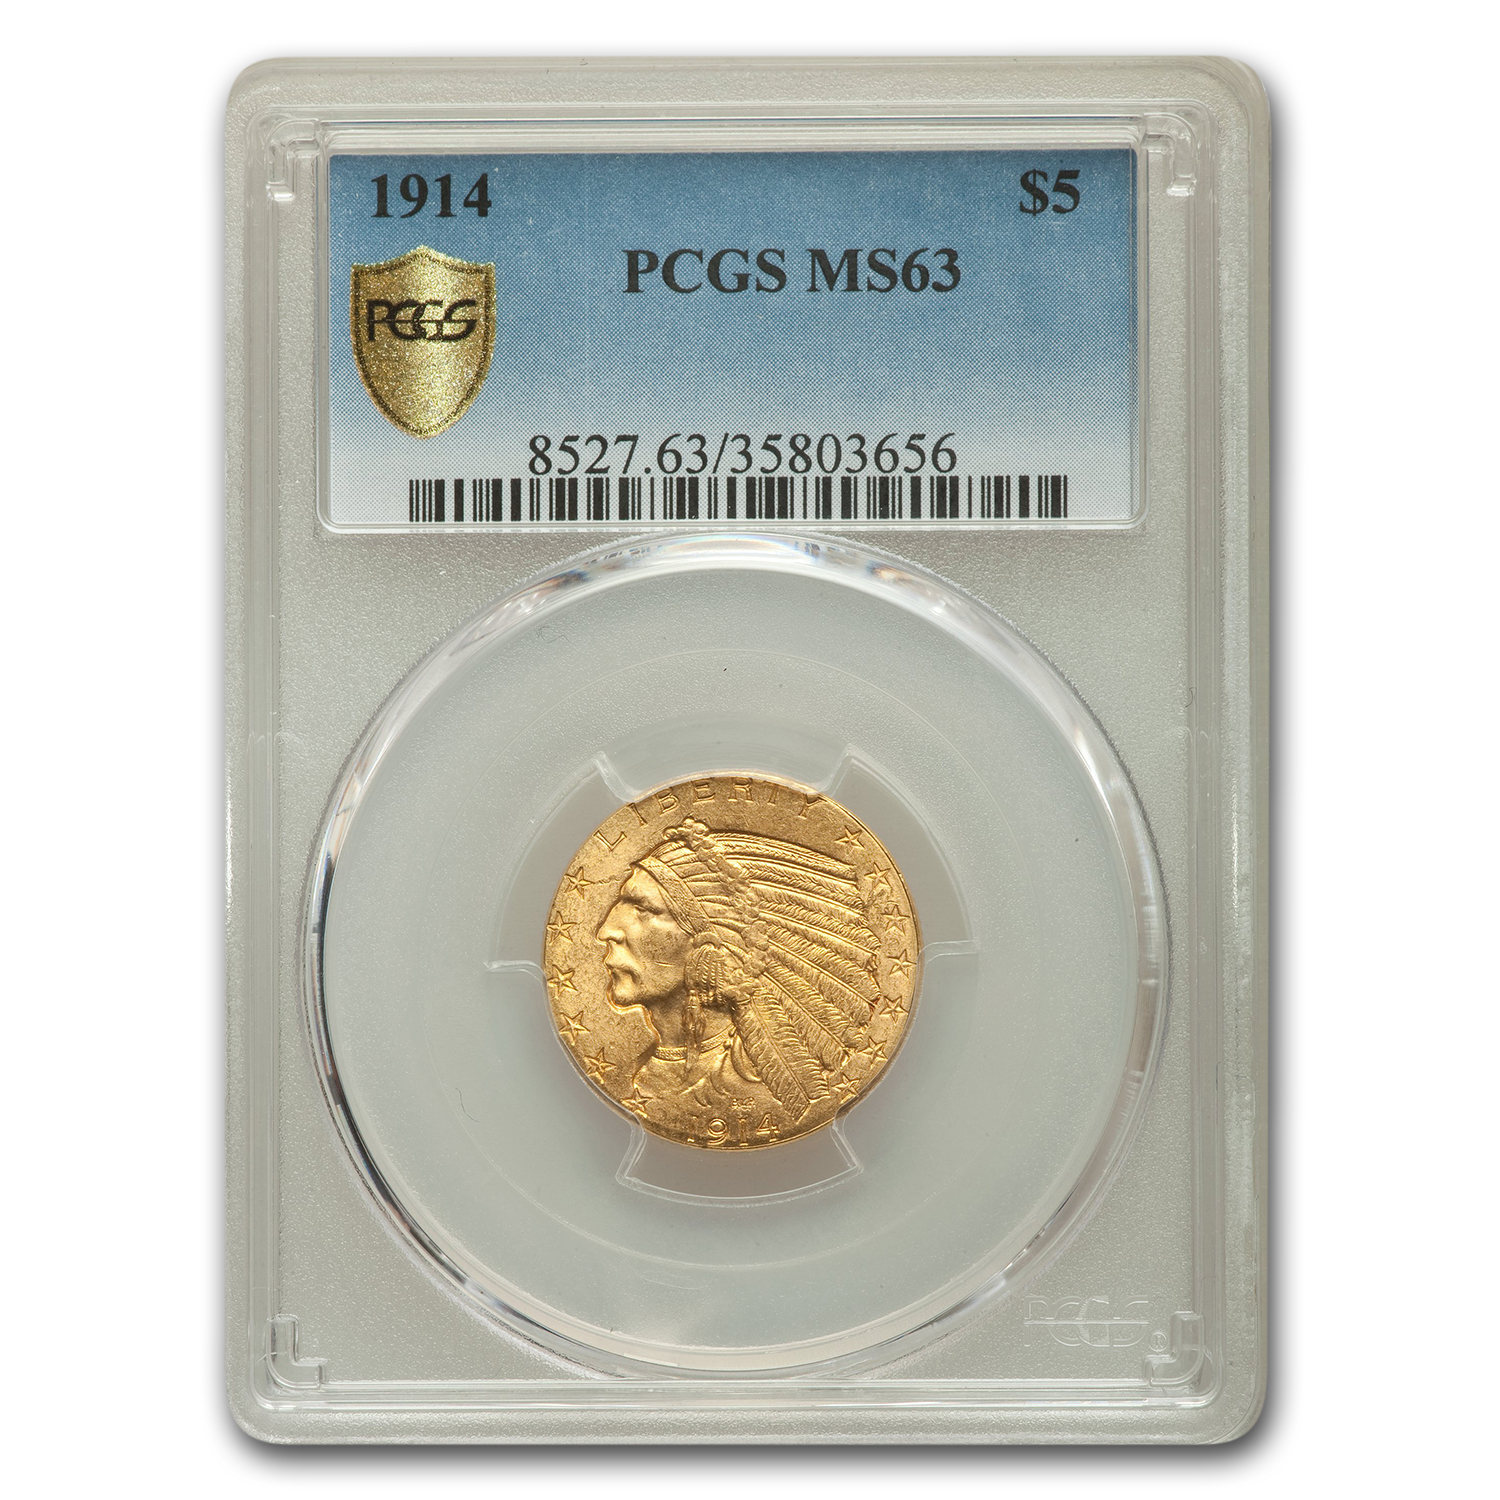 1914 $5 Indian Gold Half Eagle MS-63 PCGS